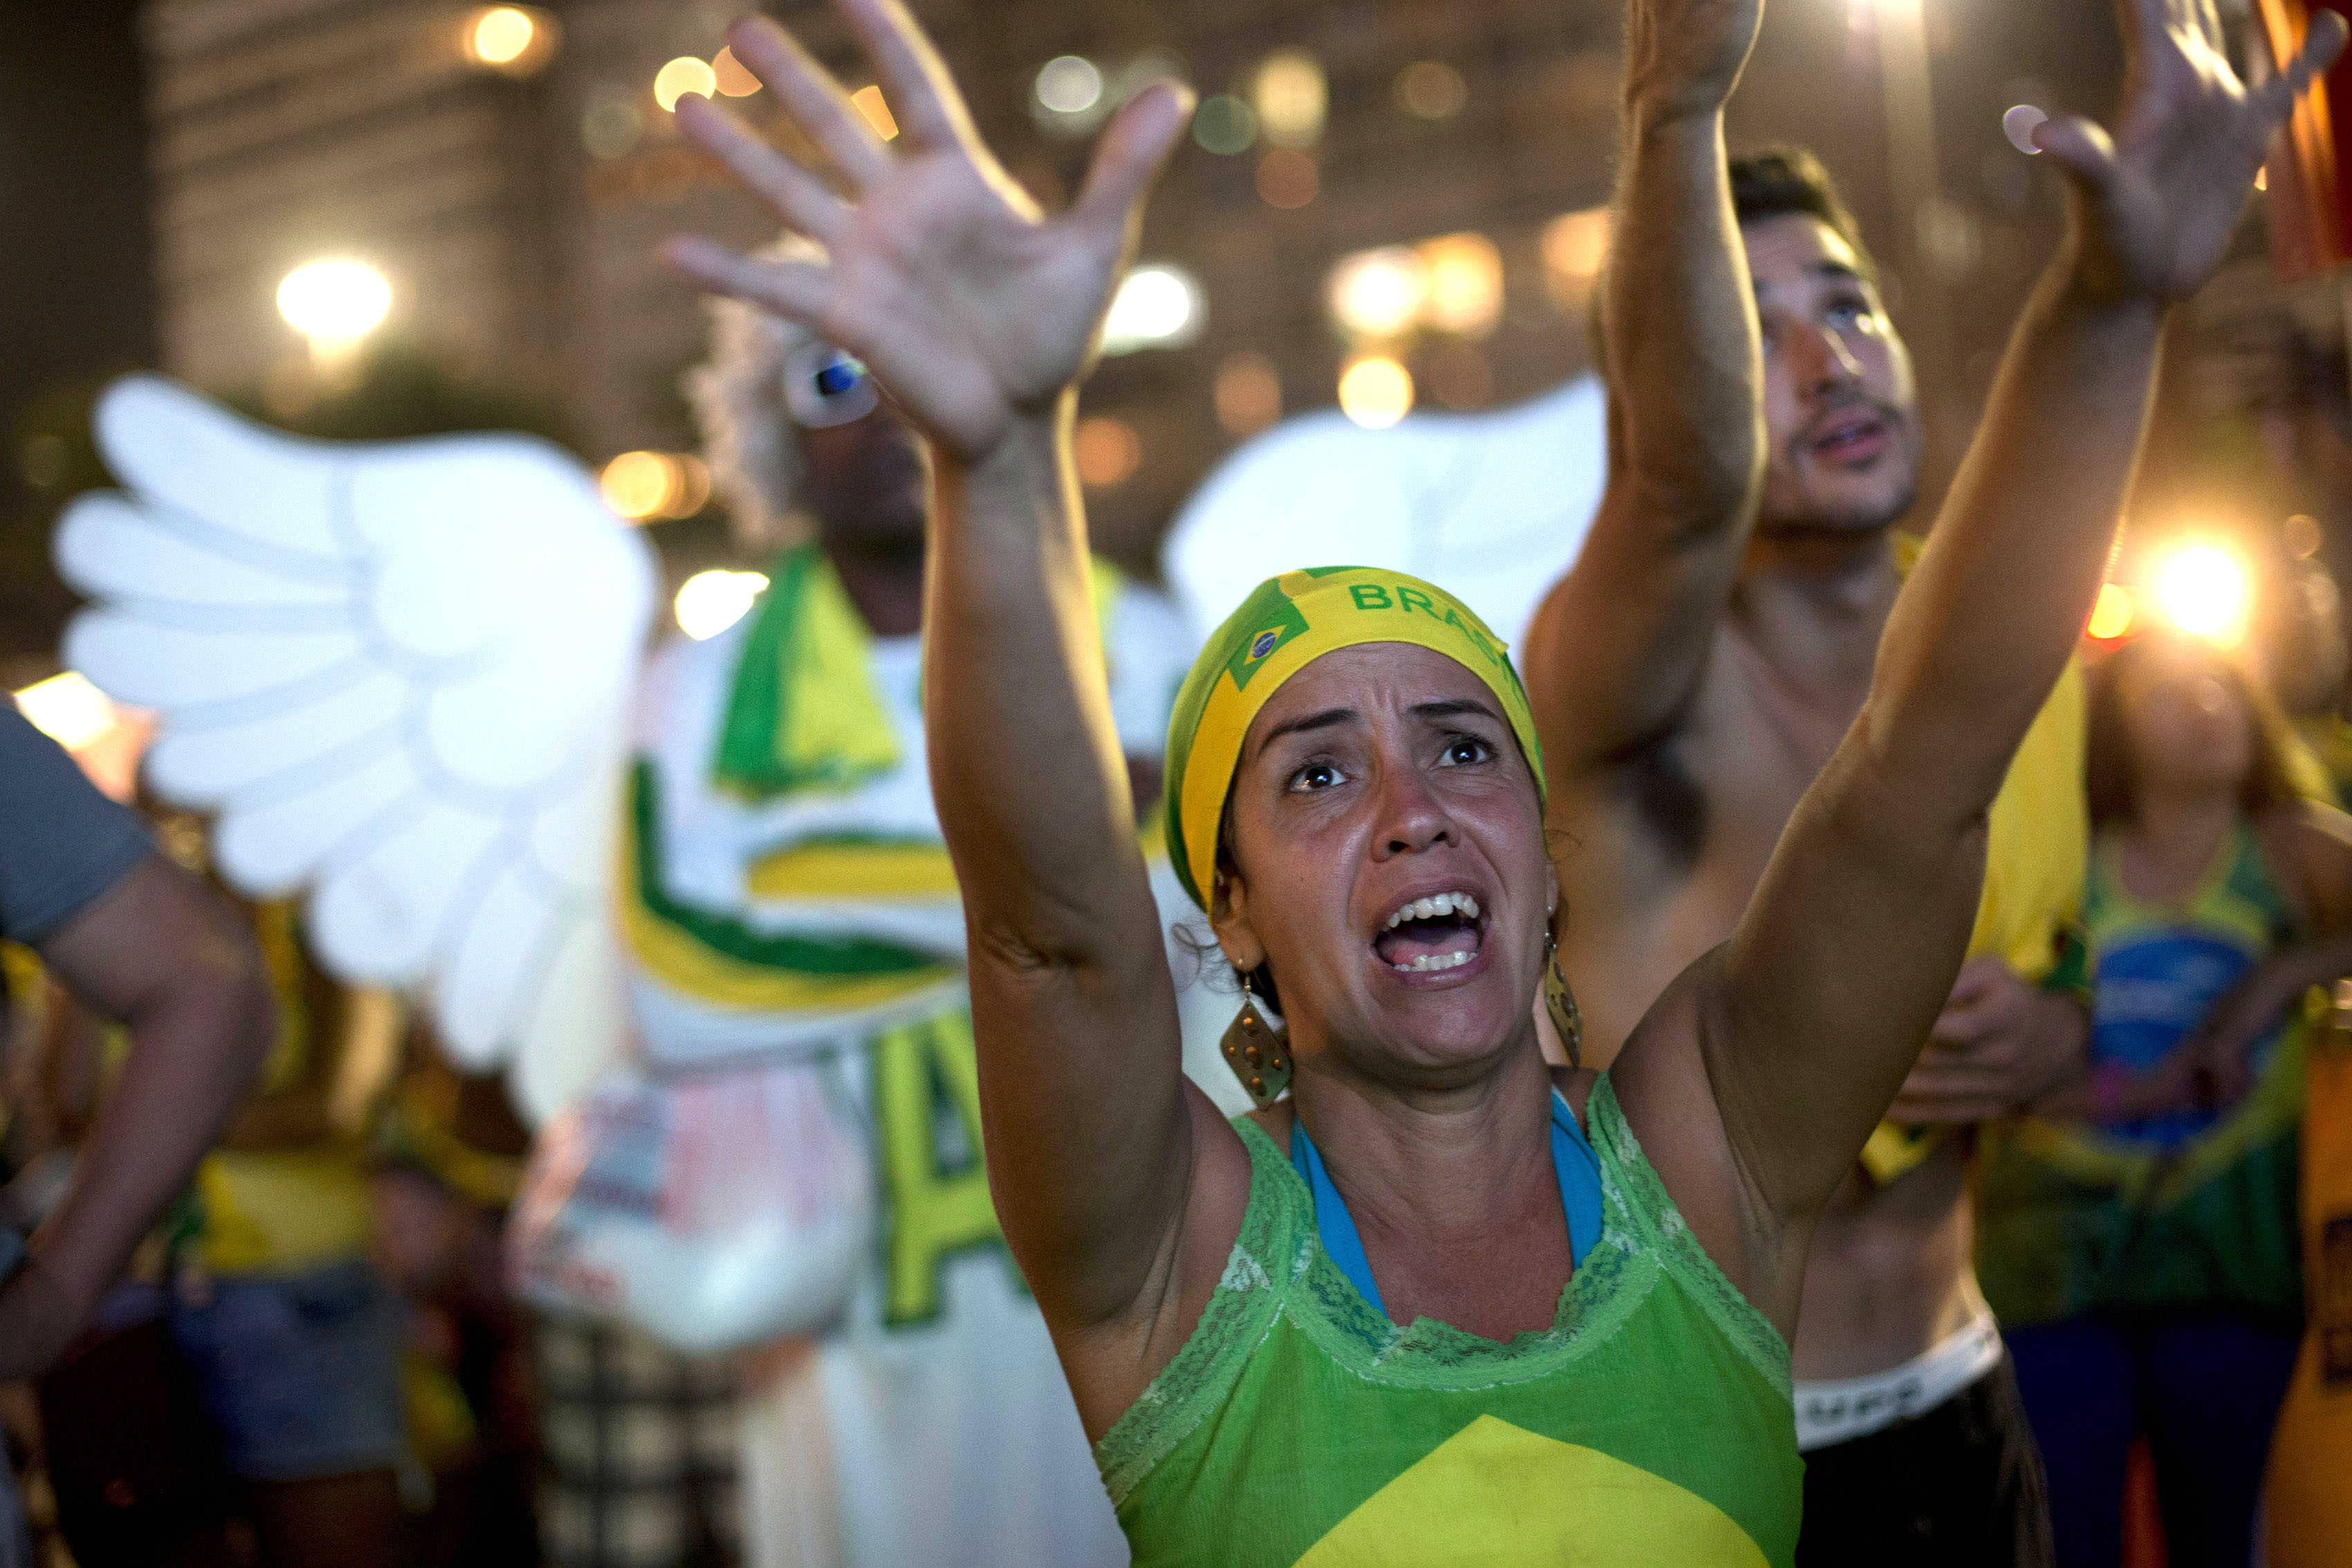 A fan reacts as she watches the game between Brazil and Croatia on a giant screen during the FIFA Fan Fest on Copacabana beach in Rio de Janeiro, Brazil, Thursday, June 12, 2014.